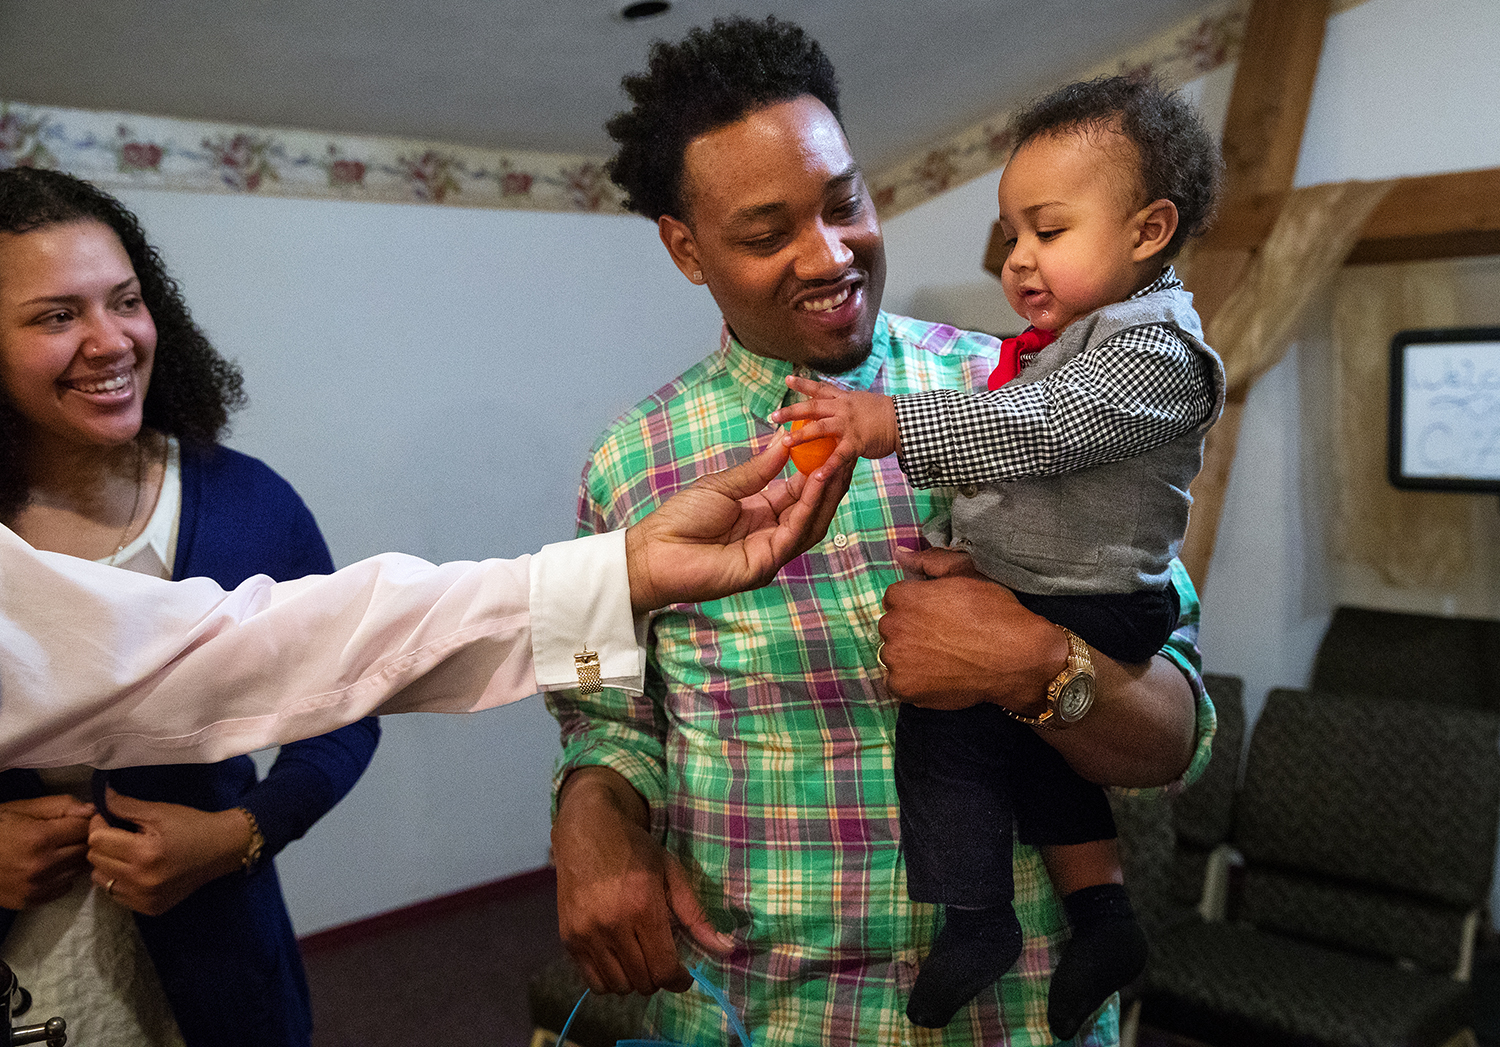 Todd Gordon Jr. holds his infant son Todd as he takes an Easter egg from his grandfather Bishop Todd Gordon Sr. after an Easter egg hunt at City of Miracles International church in Springfield on Easter Sunday, April 1, 2018. [Ted Schurter/The State Journal-Register]